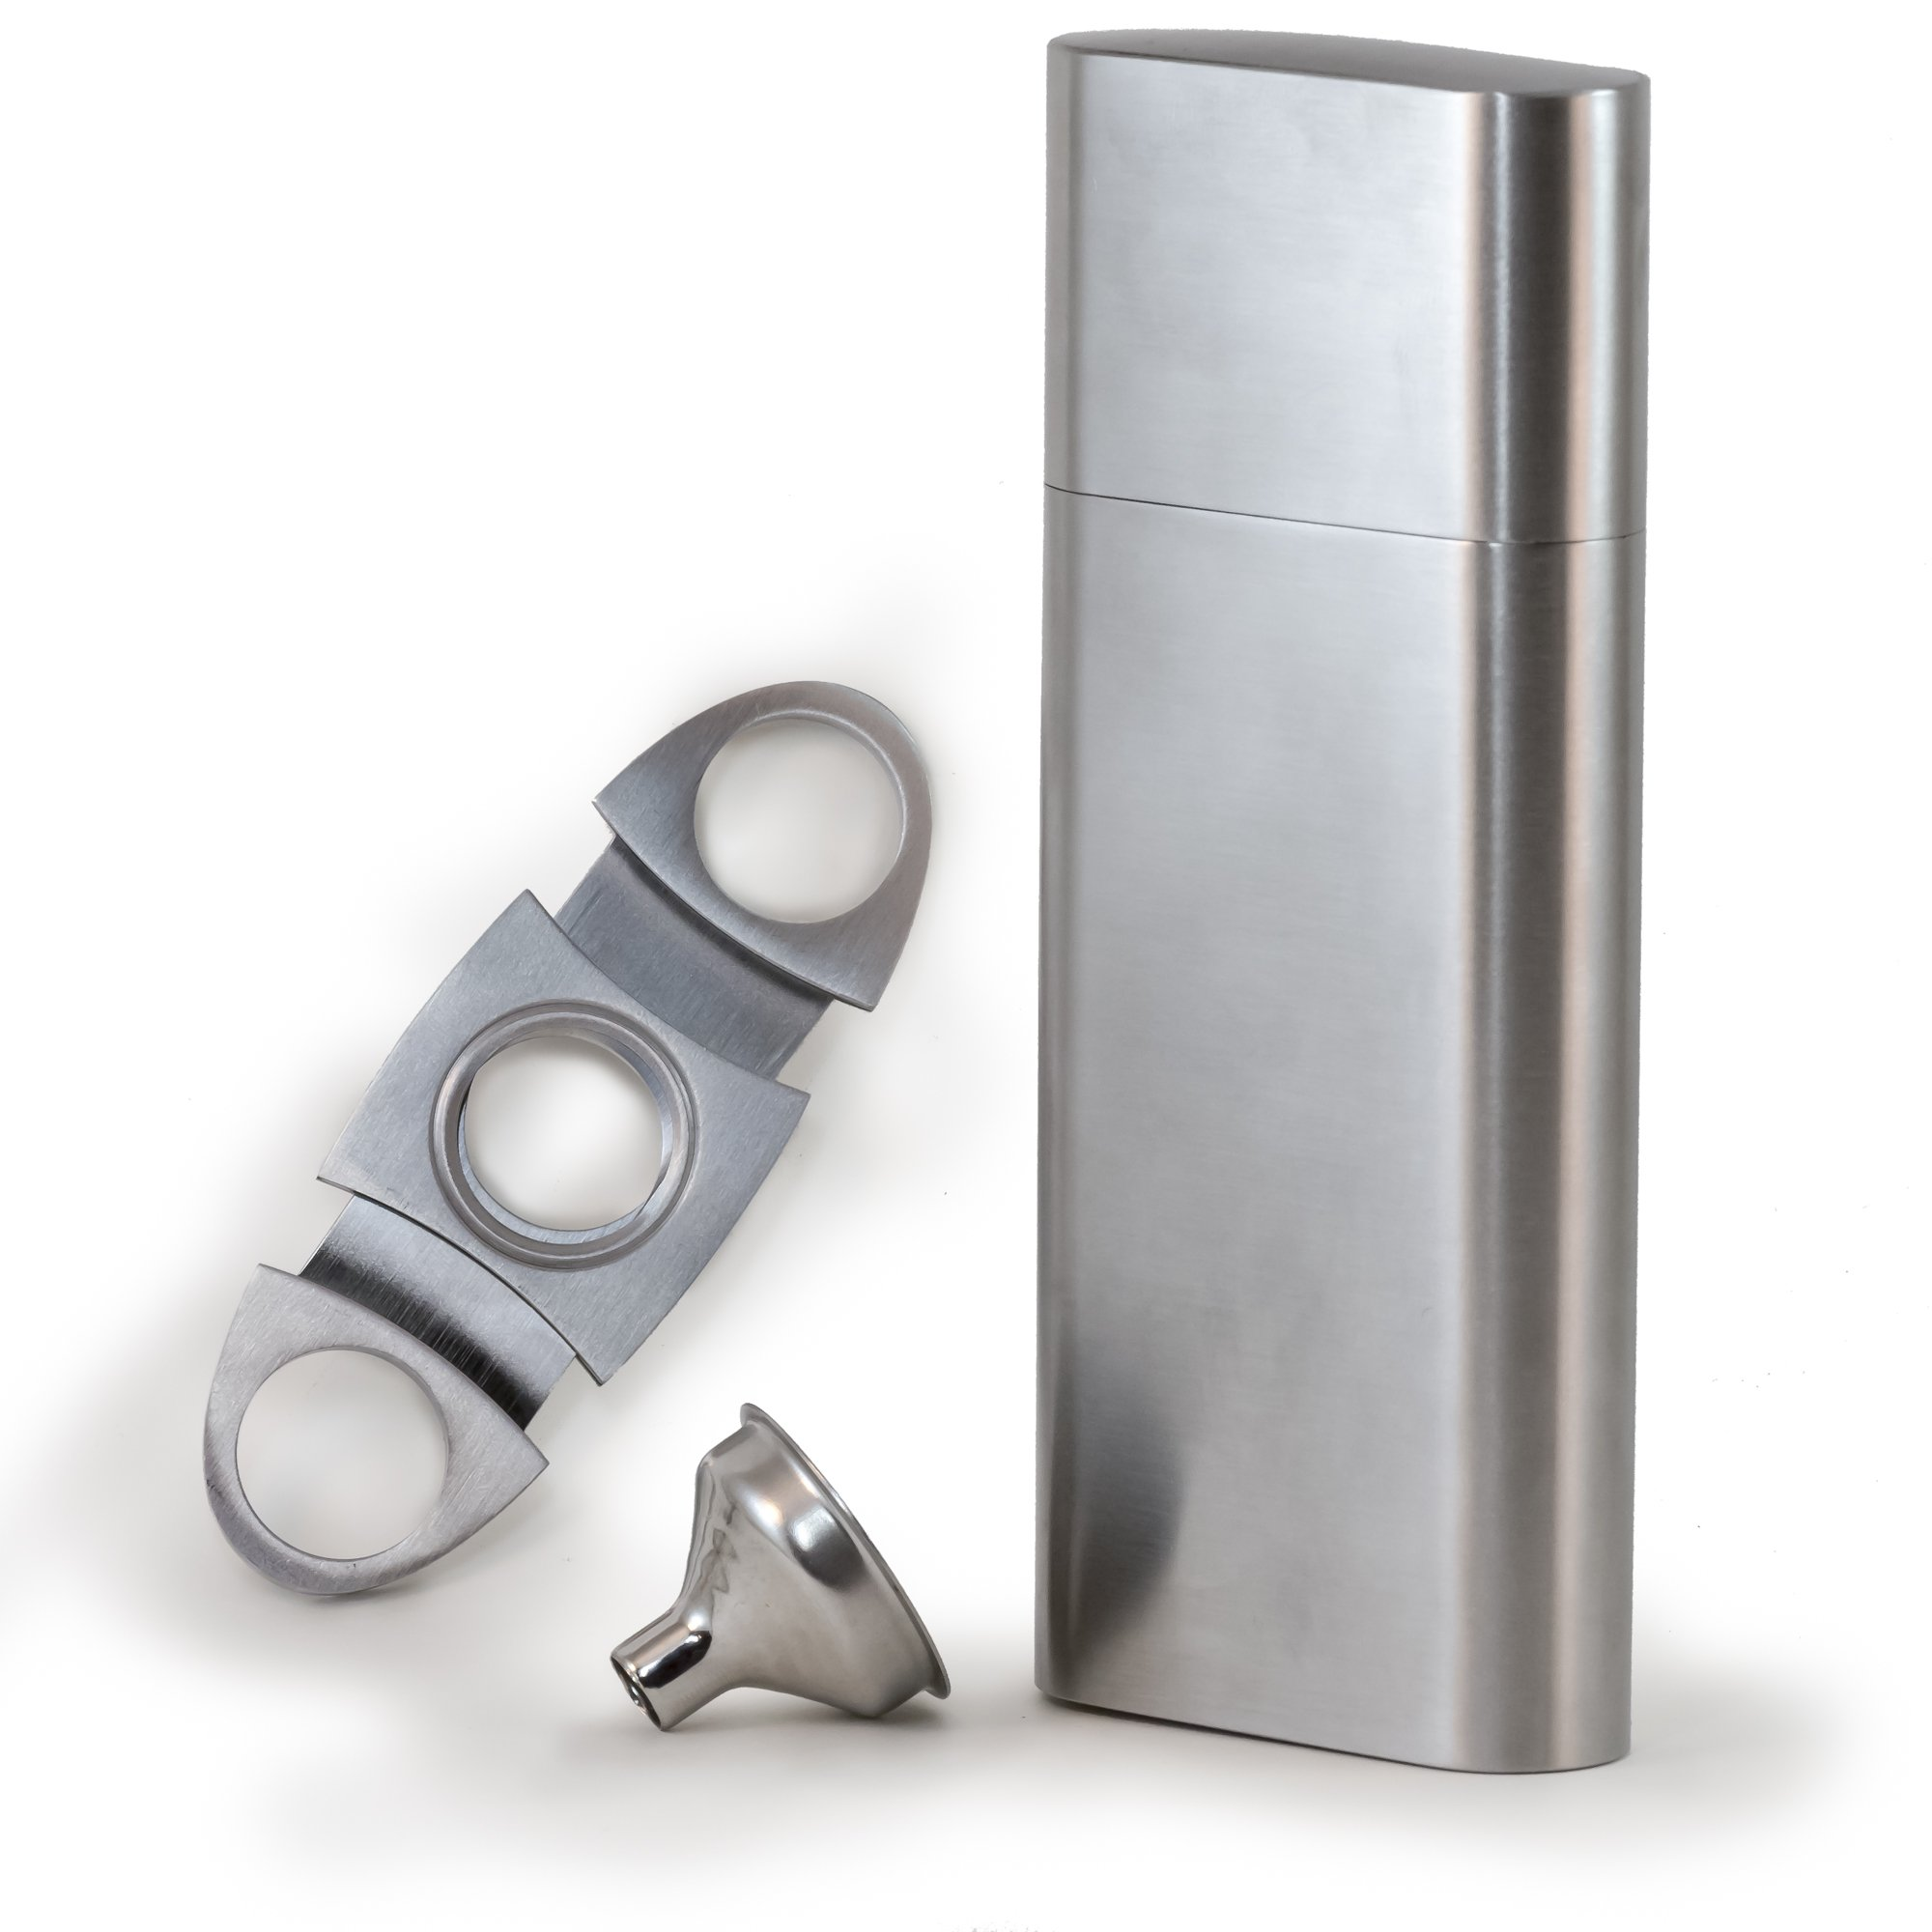 Perfect Pregame Cigar Flask Gift Set - 2 Cigar Holder and 2 Oz Stainless Steel Flask Combo - Includes Cigar Cutter and Funnel - Great Groomsmen Flask